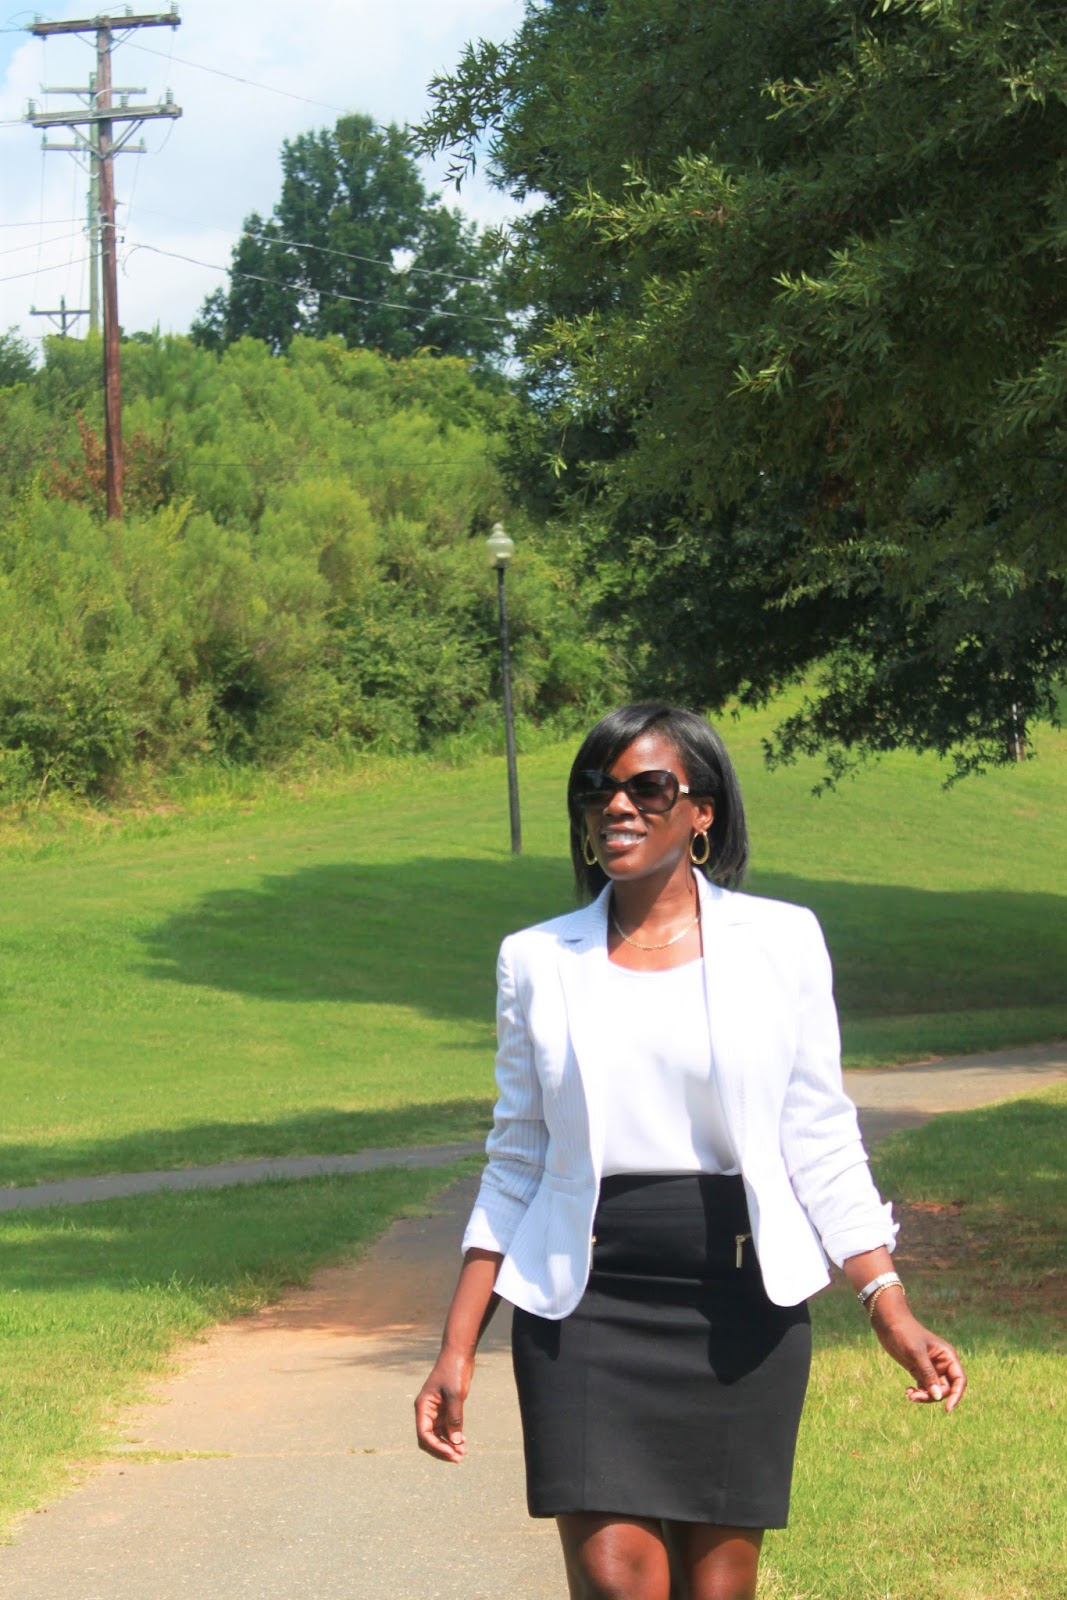 3ae4435eda8 I feel pairing the blazer with a black pencil skirt created an easy and  streamlined business casual look.